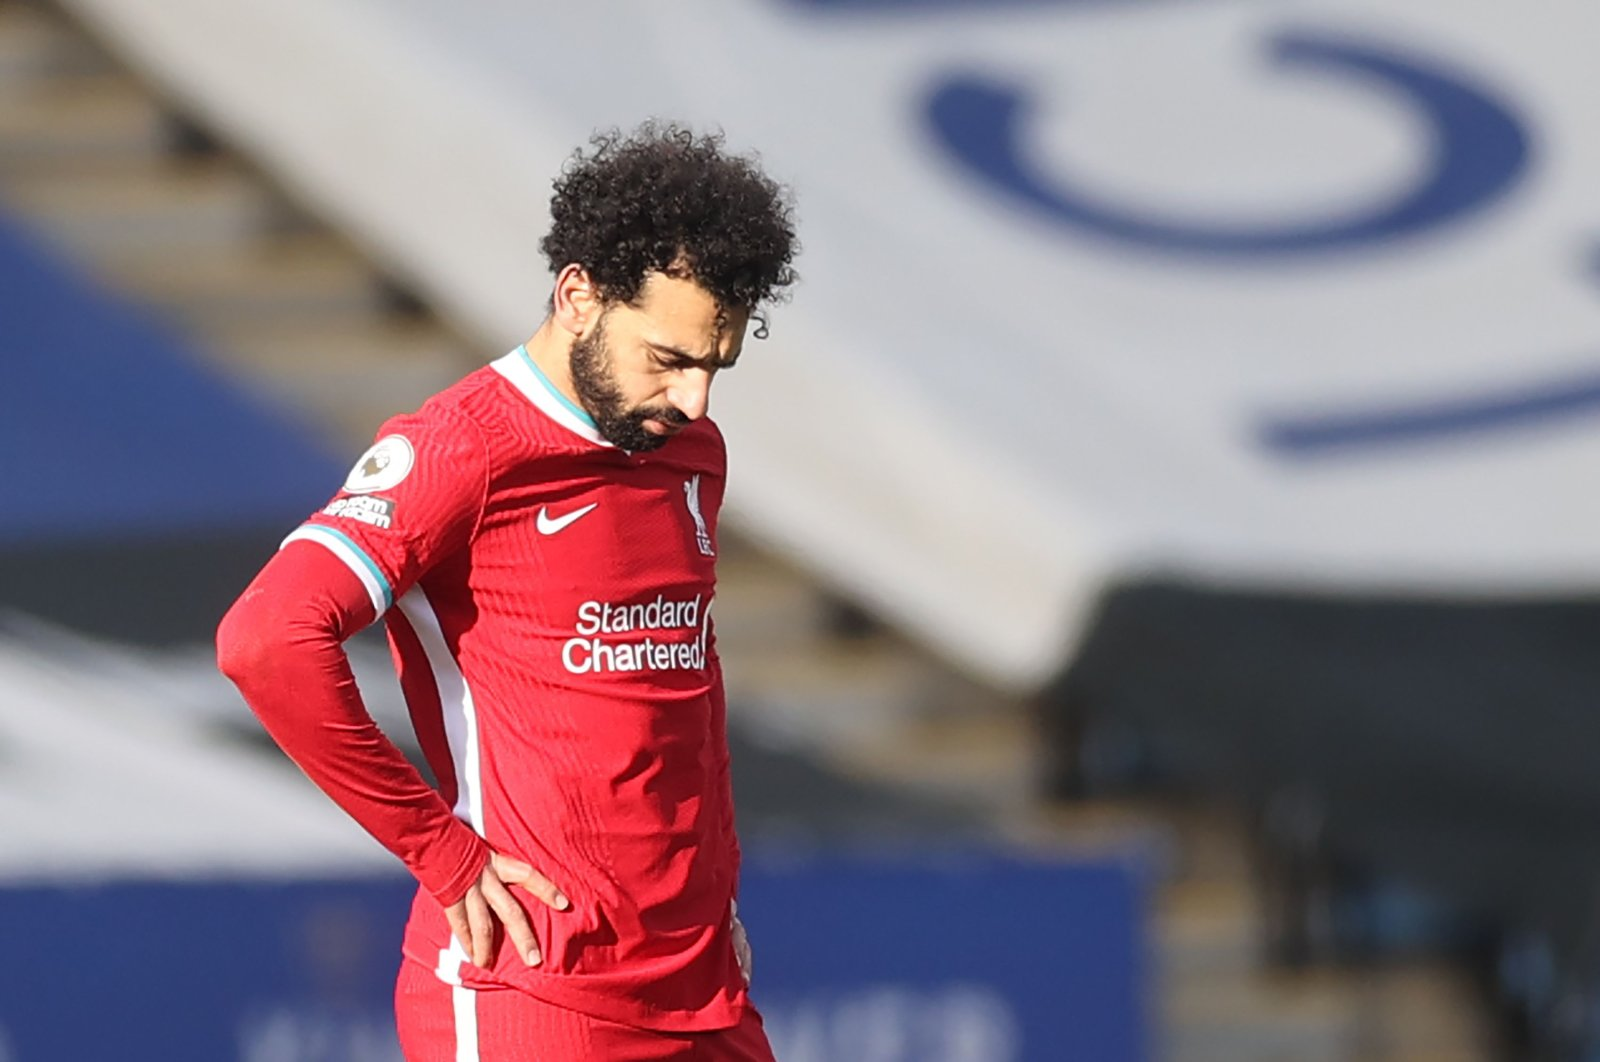 Liverpool's Egyptian midfielder Mohamed Salah reacts during the English Premier League football match between Leicester City and Liverpool at King Power Stadium in Leicester, central England, Feb. 13, 2021. (AFP Photo)